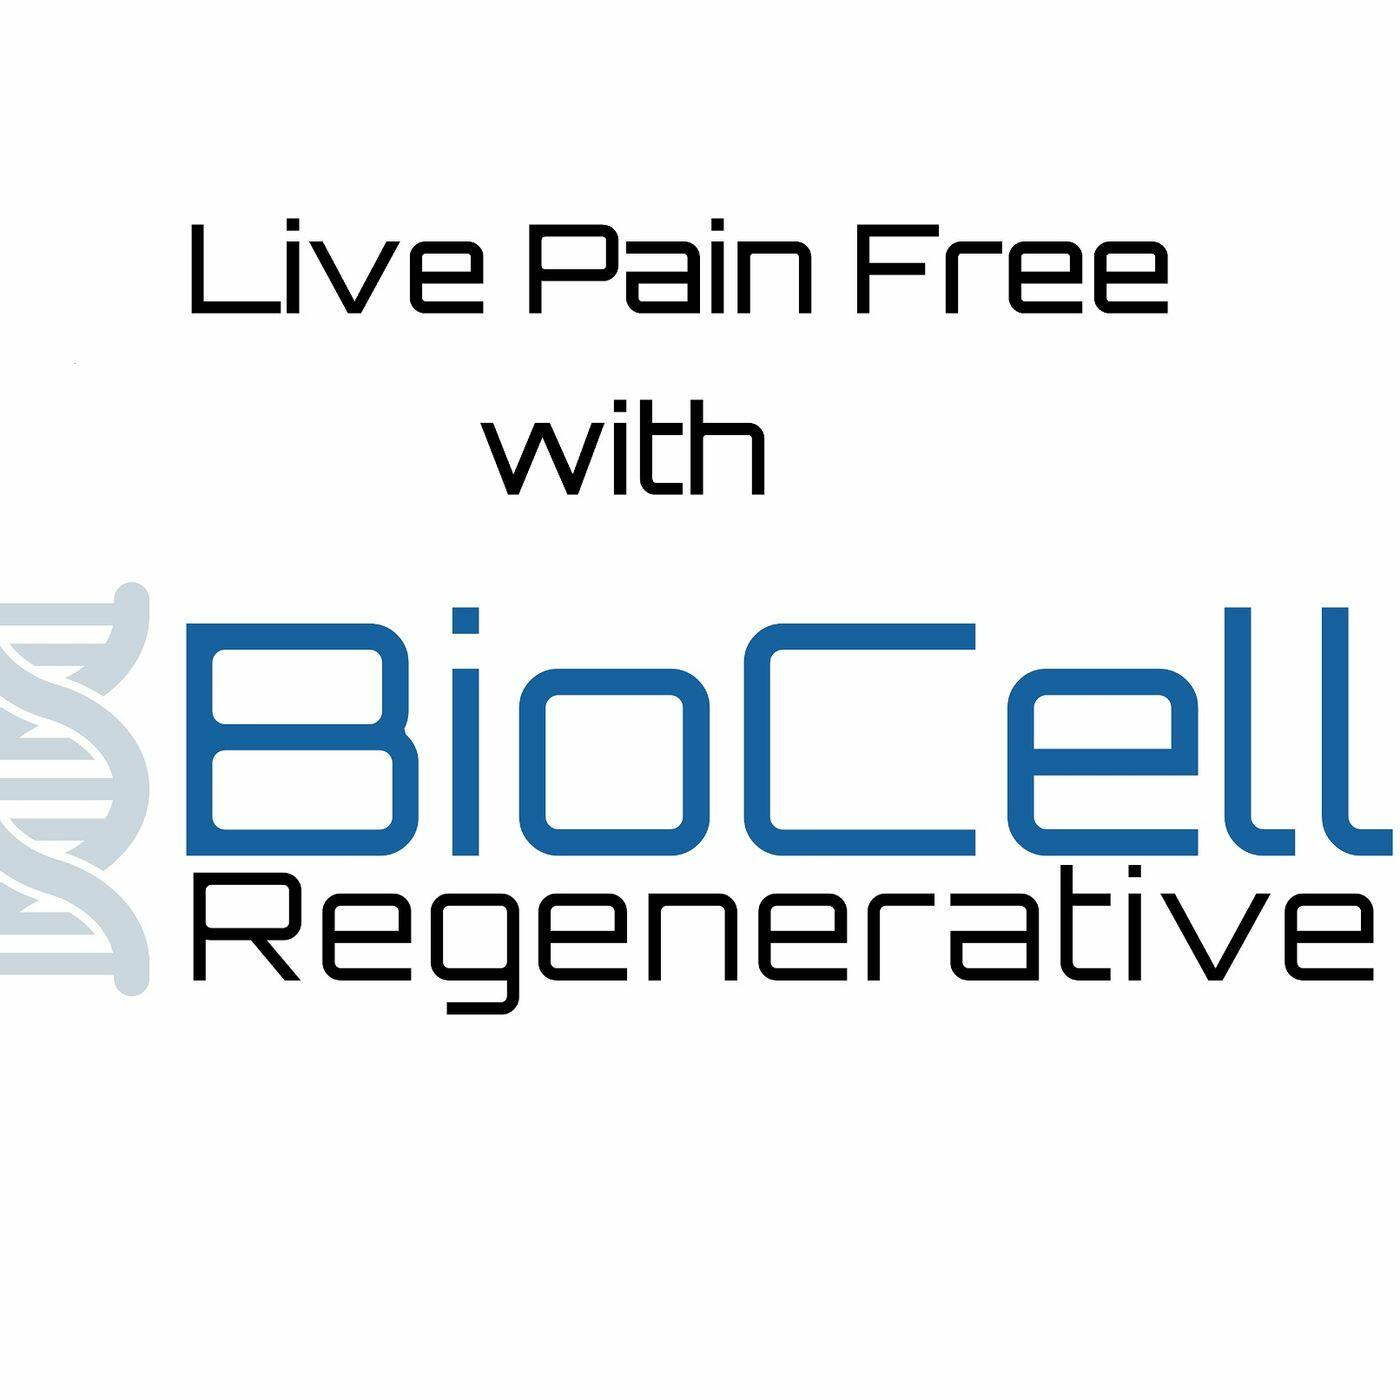 Live Pain Free with Biocell Regenerative